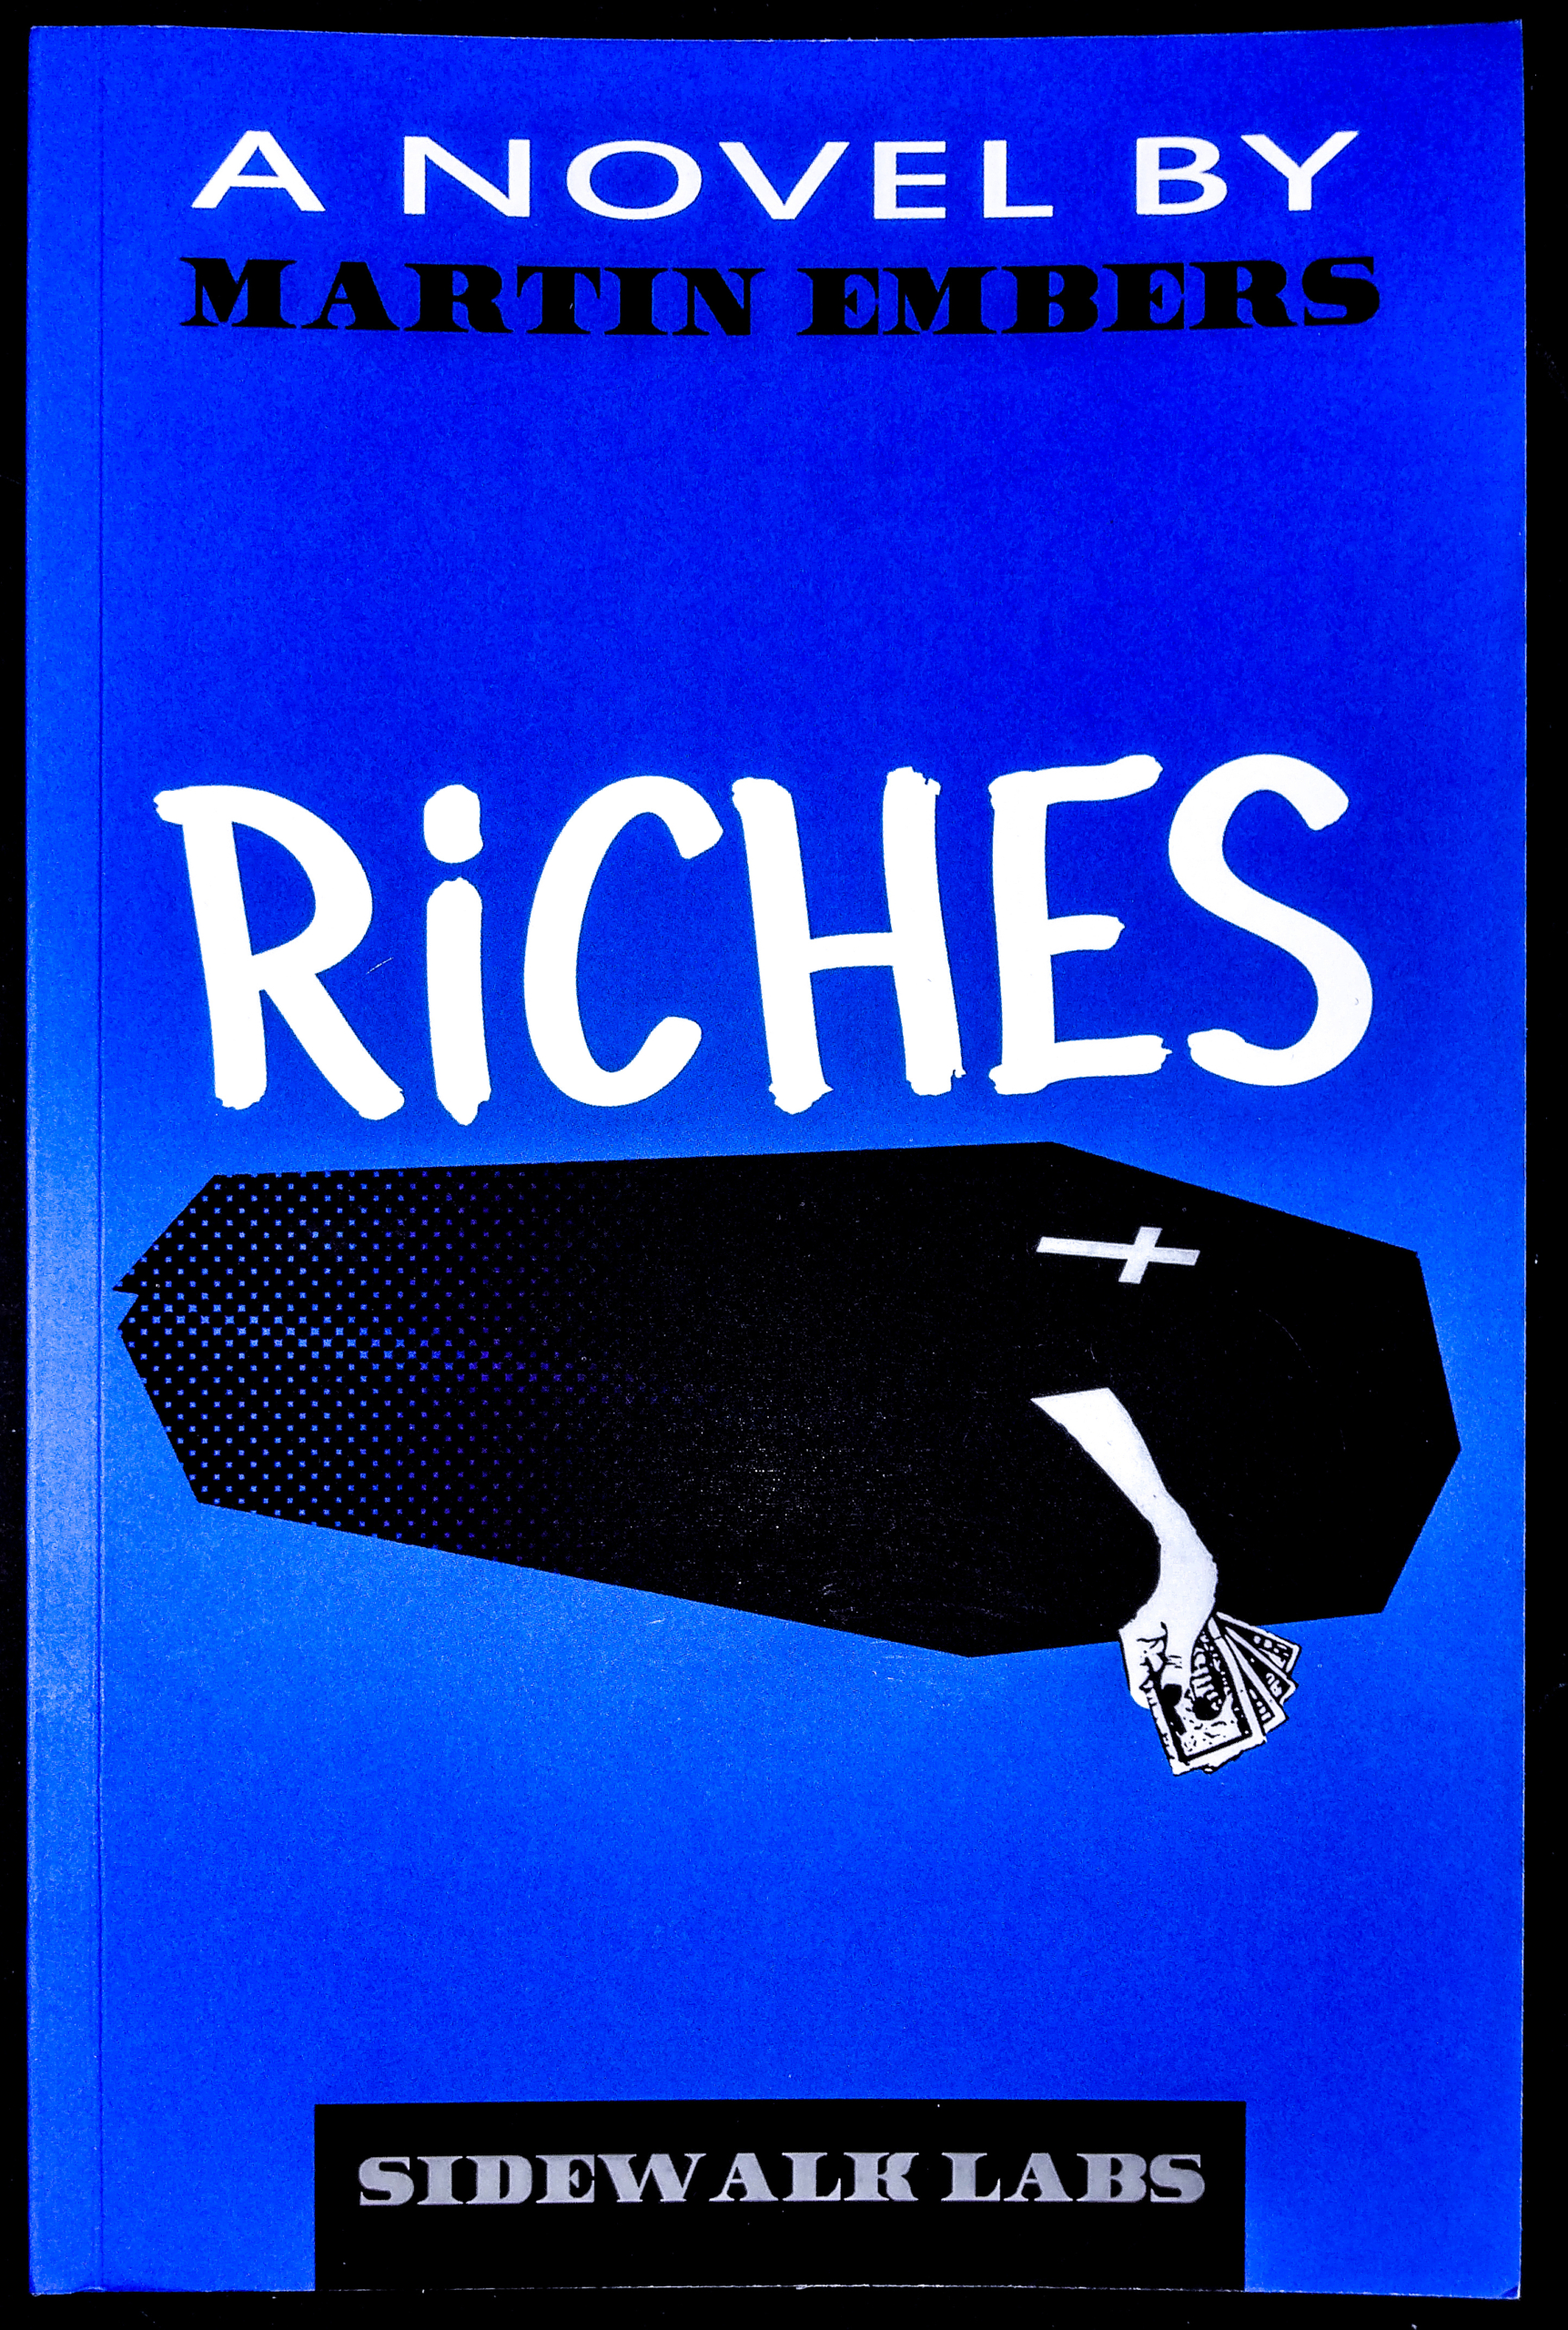 Riches front cover